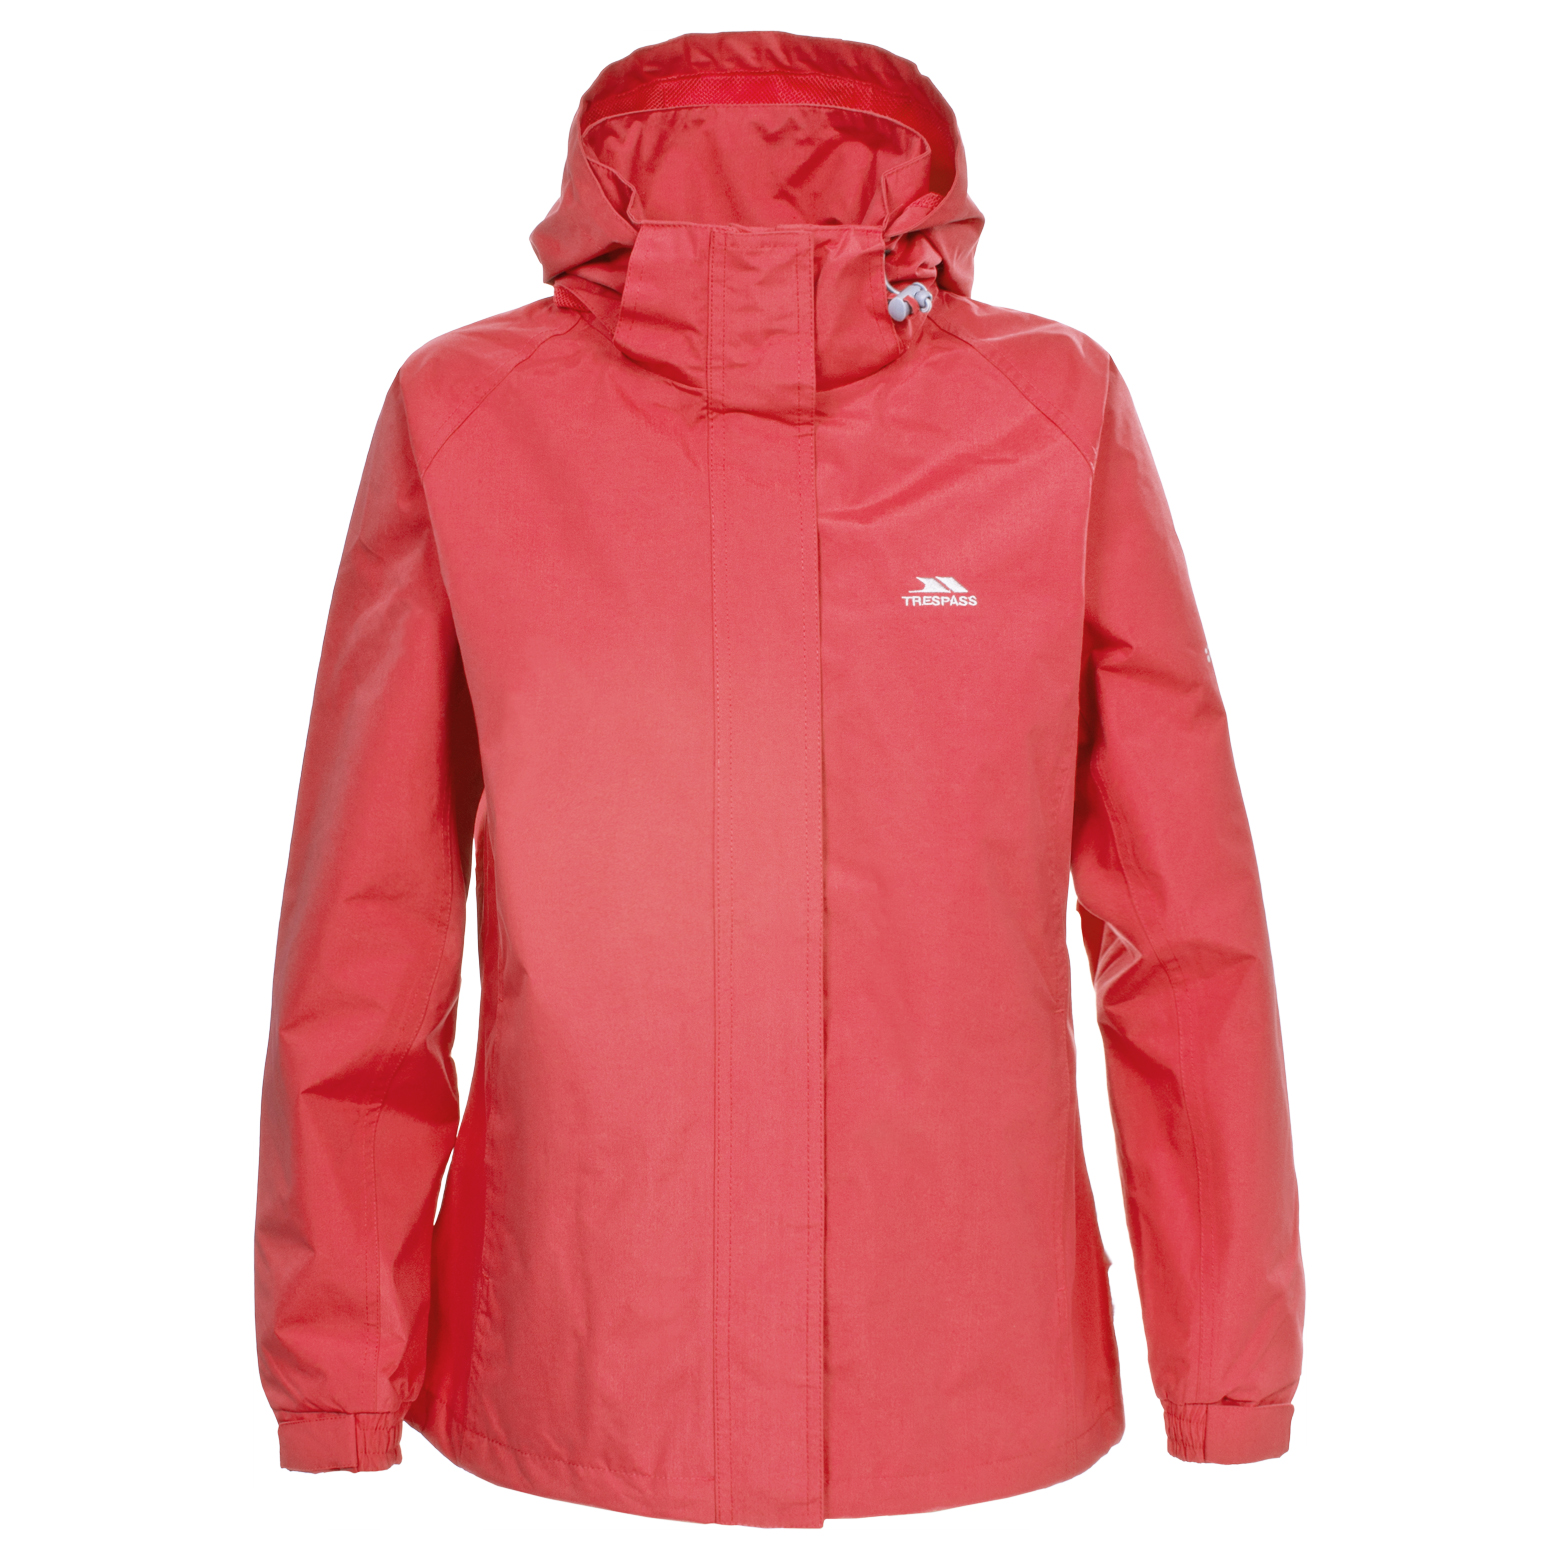 Womens coats and jackets online